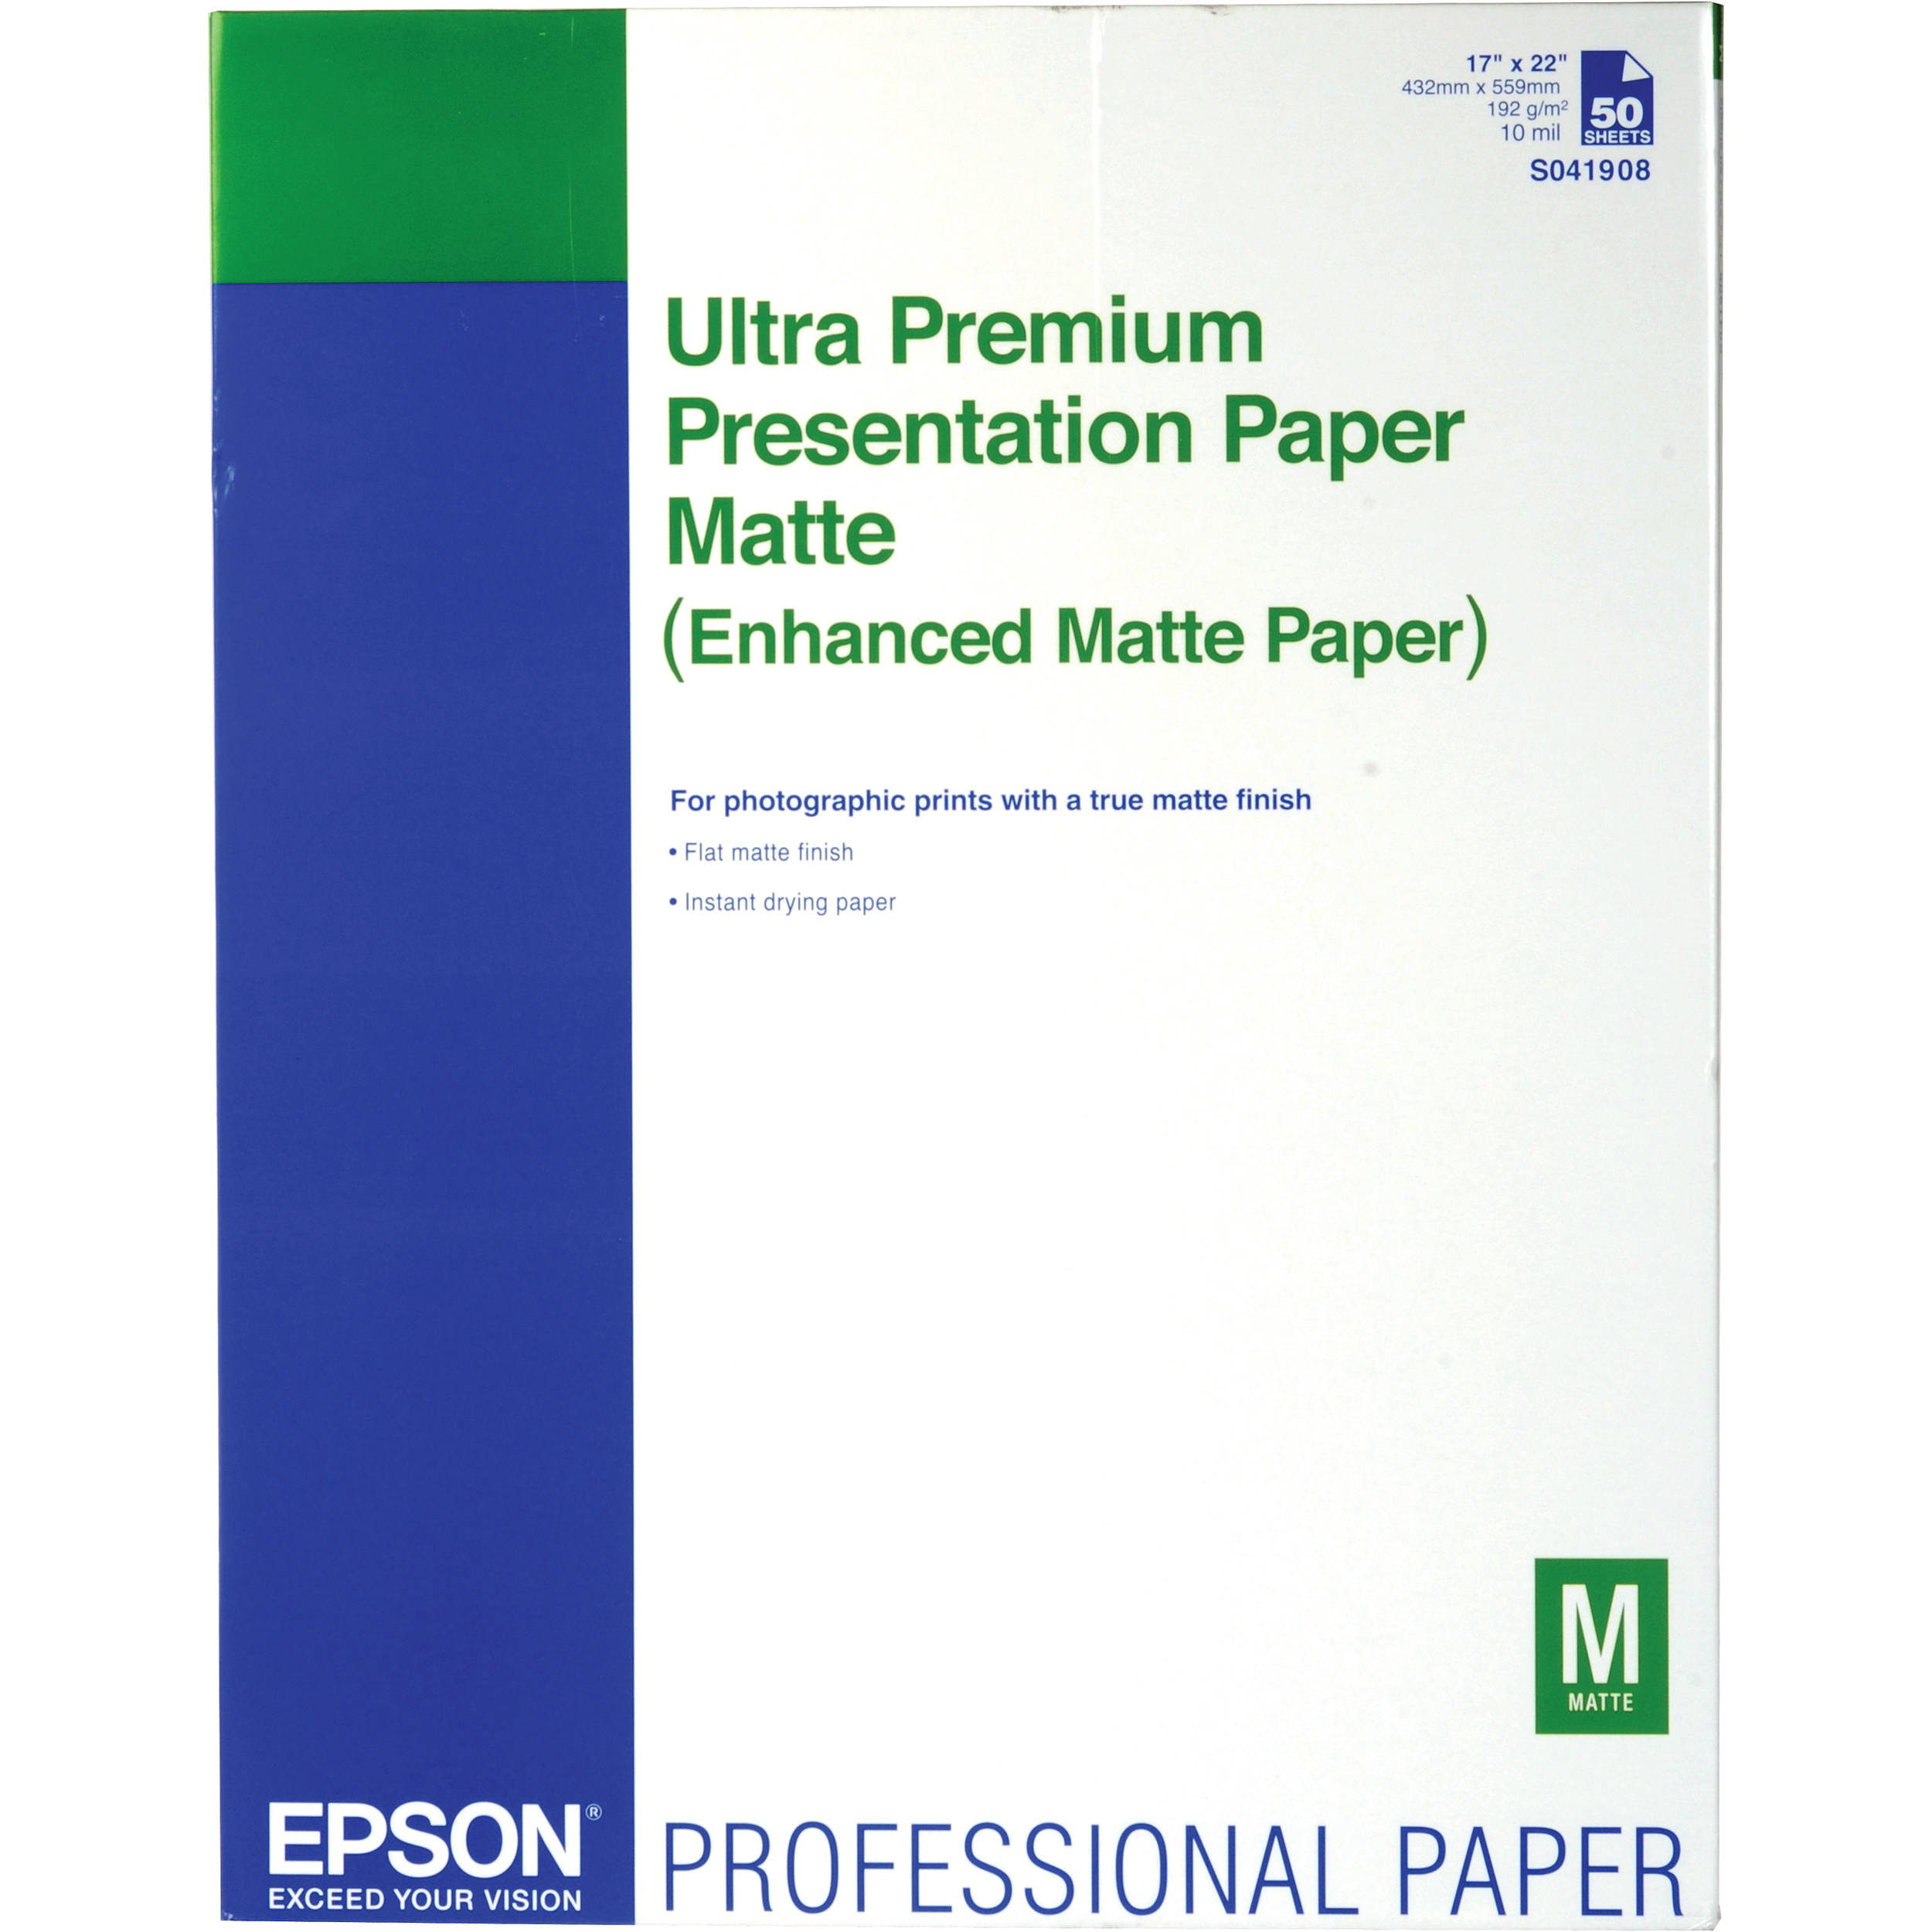 epson matte paper See pricing info, deals and product reviews for epson® presentation paper, matte finish at quillcom order online today and get fast, free shipping for your business.